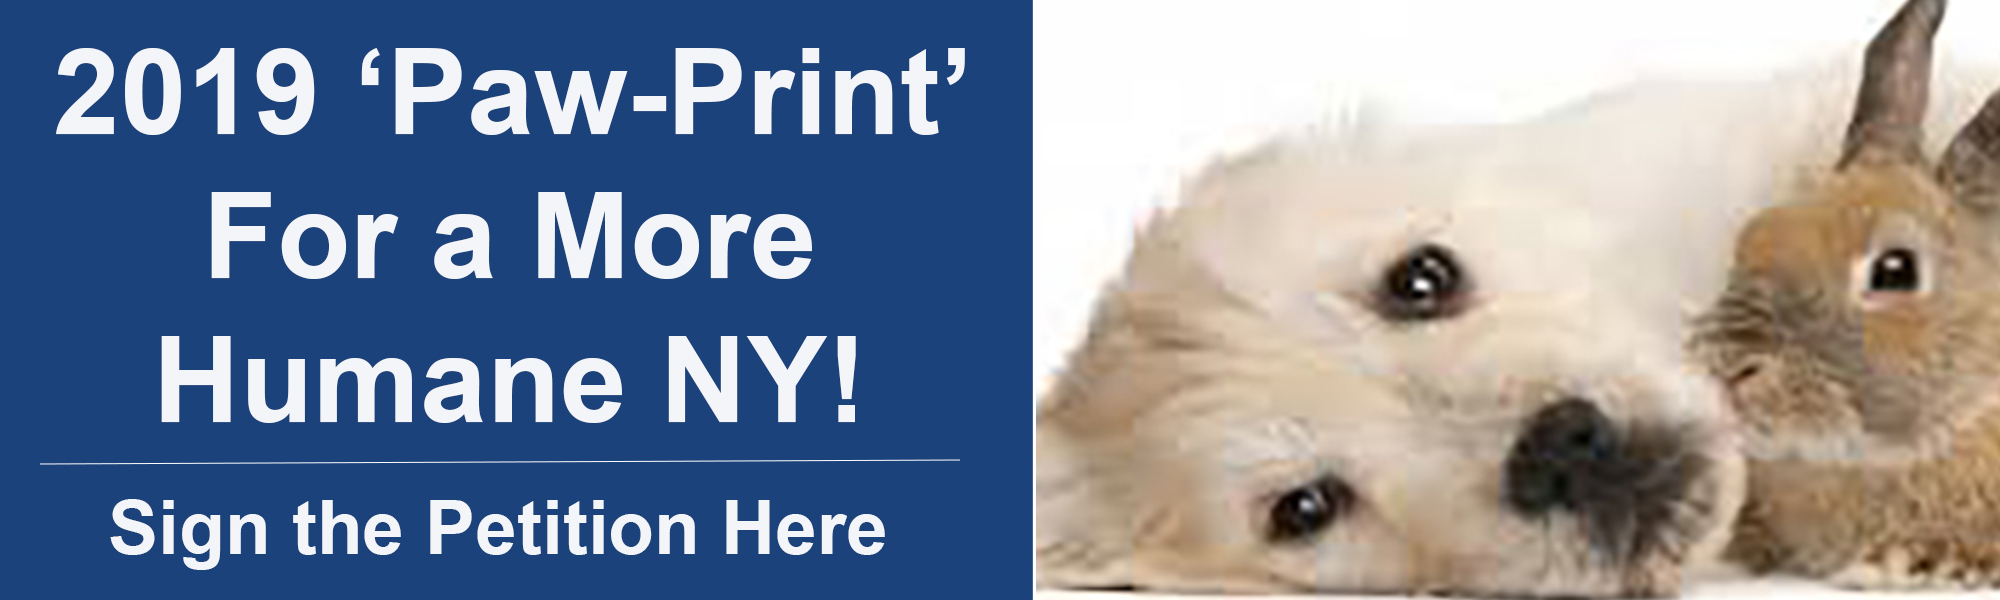 2019 'Paw-print' for a More Humane New York!